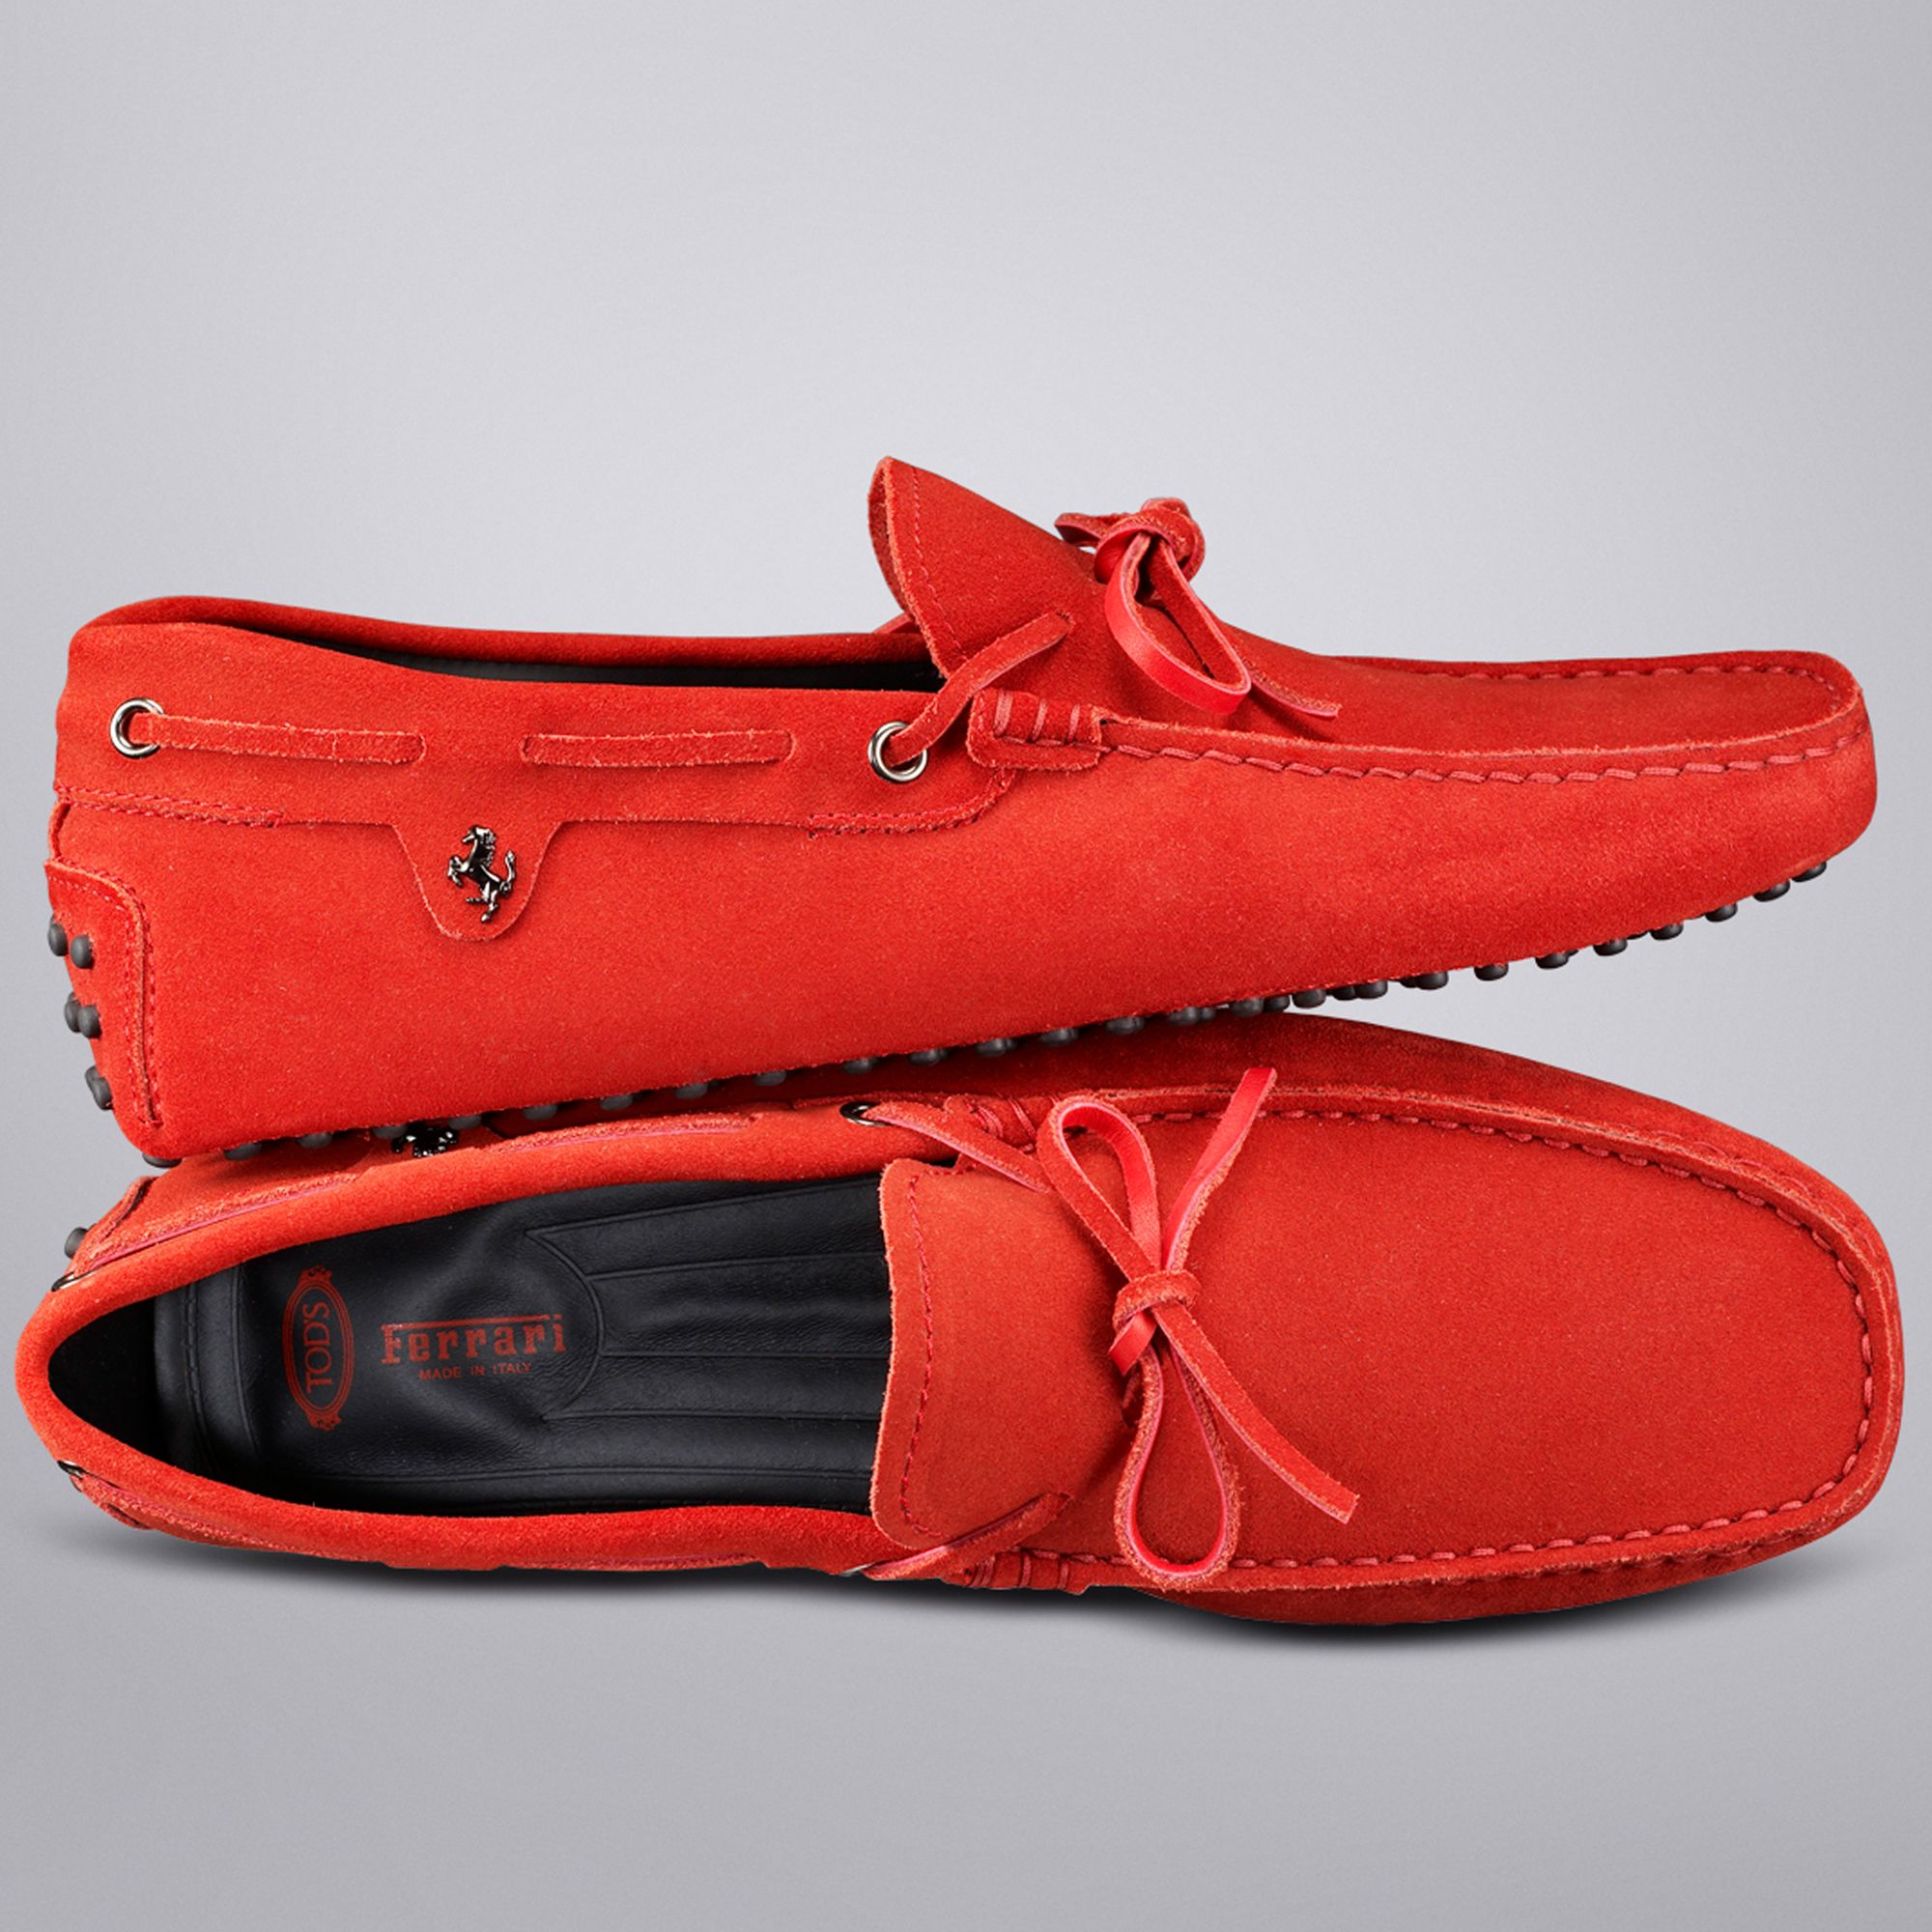 tods lrg mouse s zoom your over image magic p powered by ferrari cheap shop price low of tod move shoes